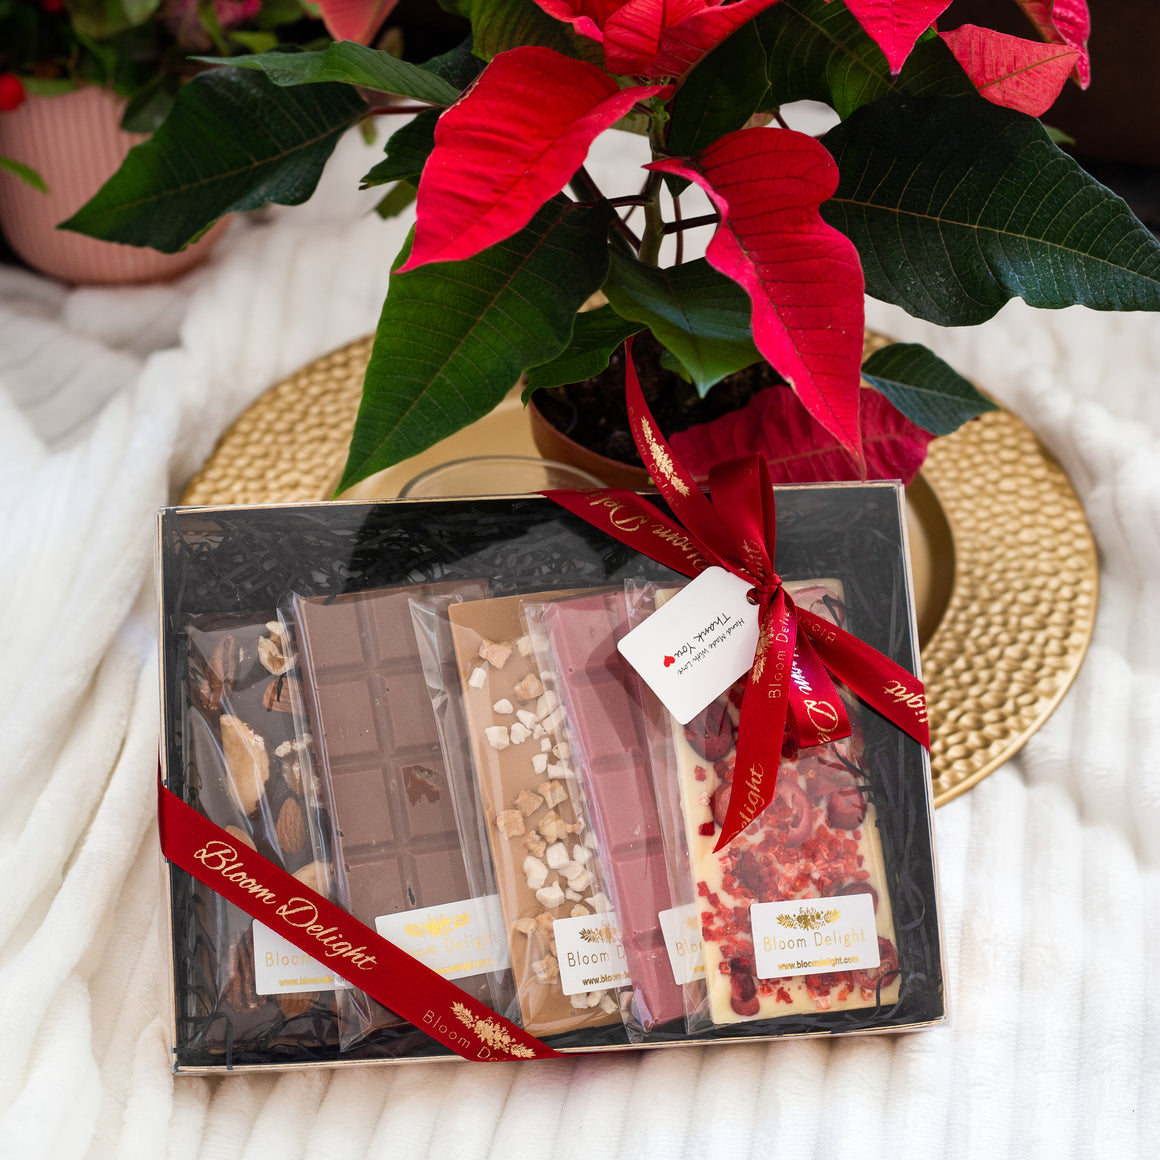 chocolate bar selection box gift idea